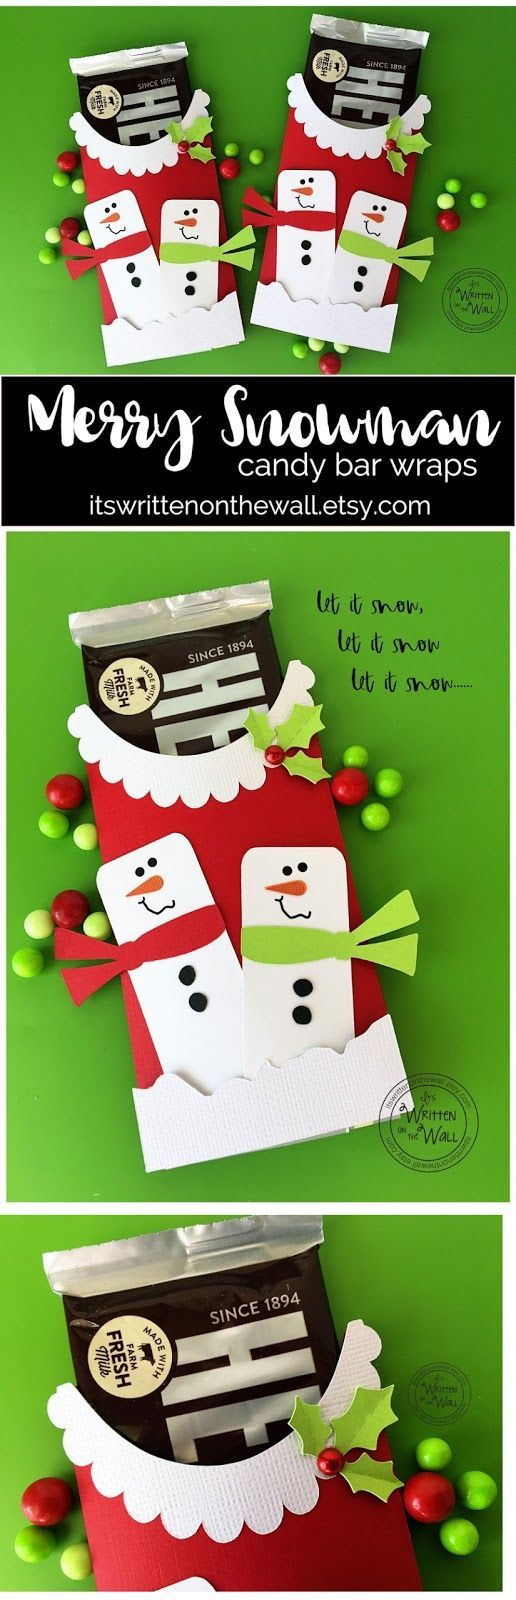 Merry Snowman Candy Bar Wrappers-Stocking Stuffers-Gifts for Co-Workers, Employees, Teacher and more